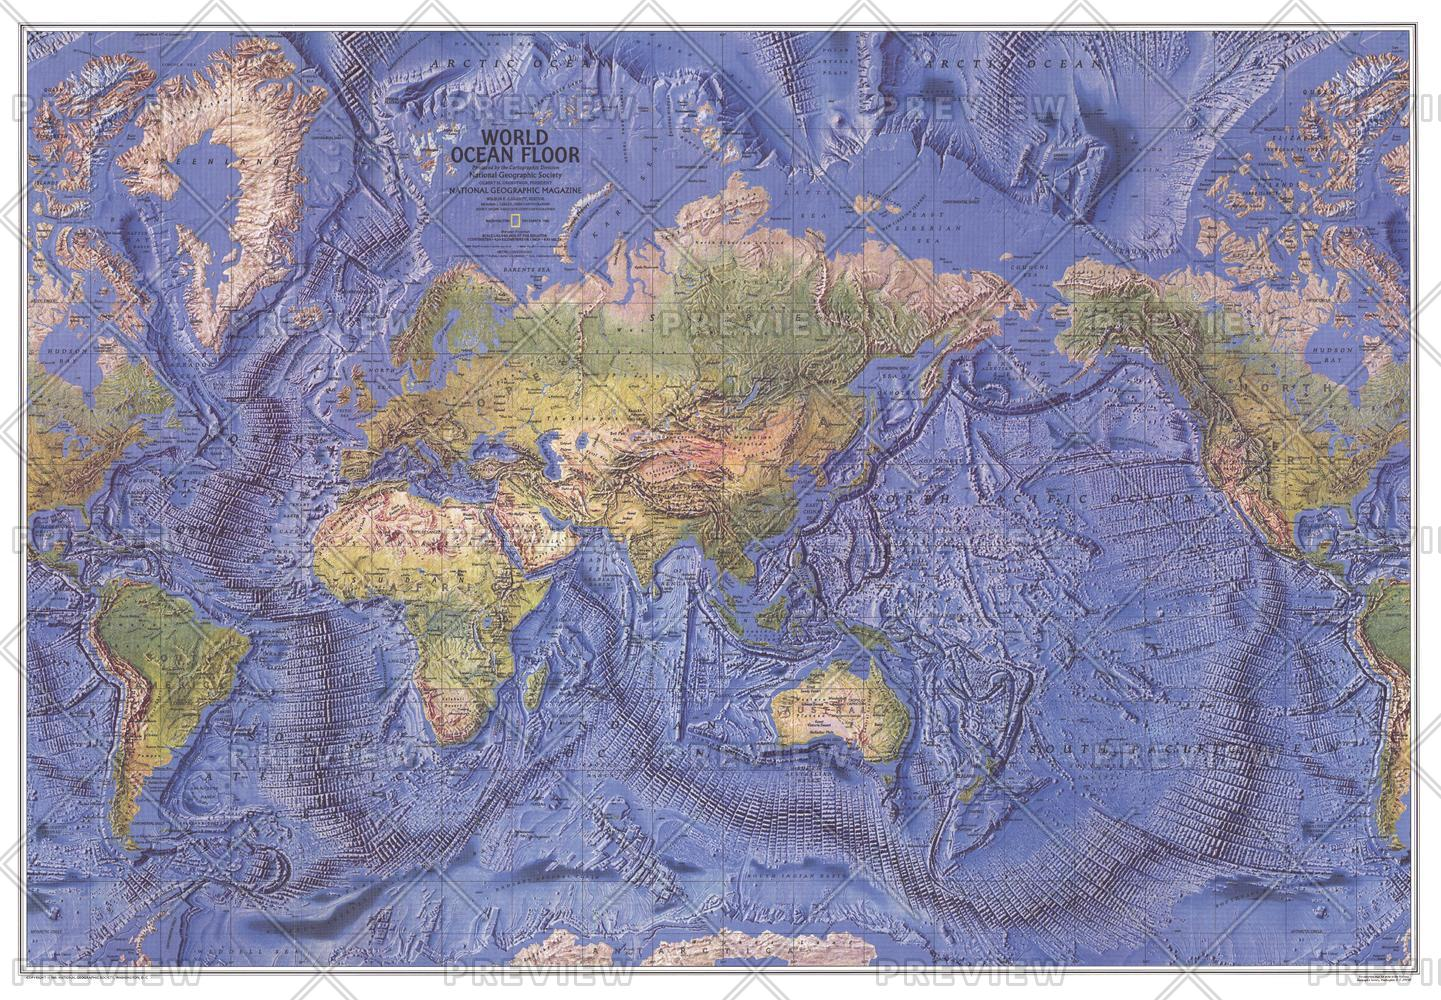 World Ocean Floor  -  Published 1981